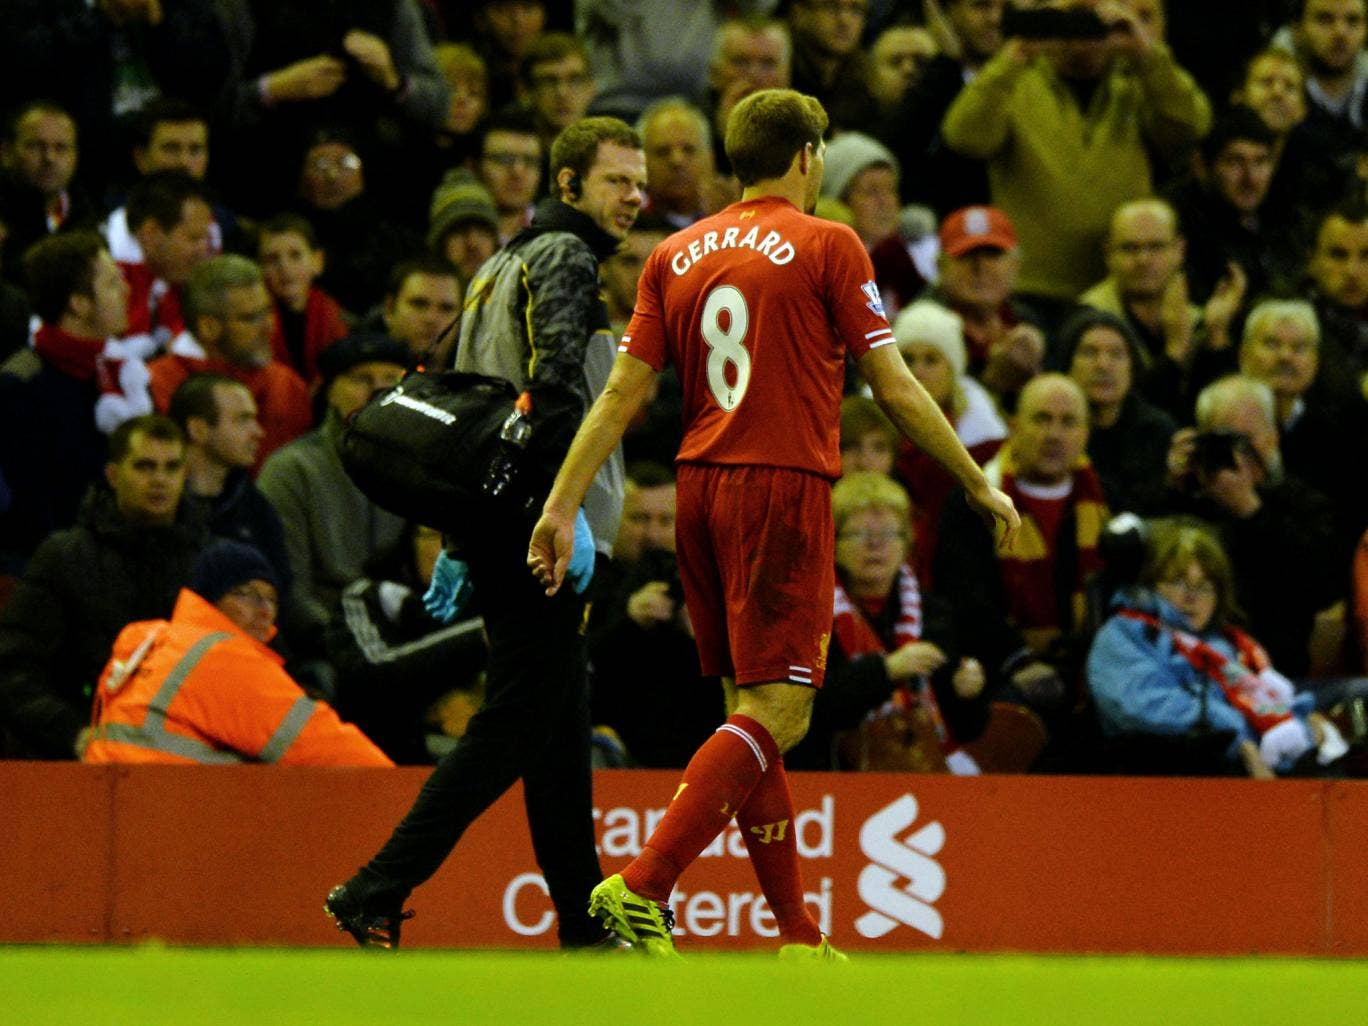 Liverpool saw Steven Gerrard limp off in the second half during the 4-1 win over West Ham